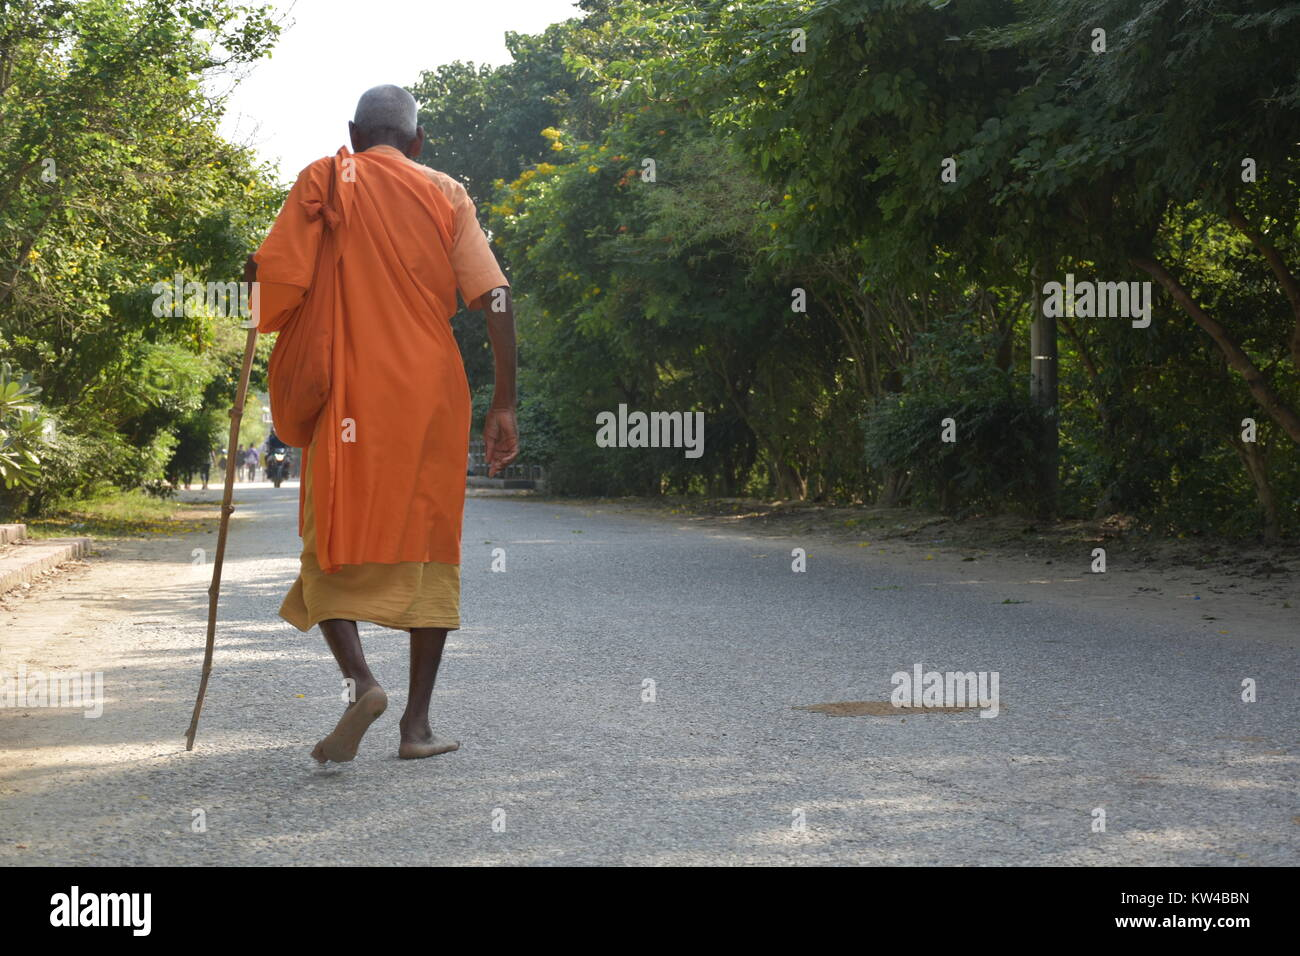 A monk walking on the street of Lumbini, the birthplace of Lord Buddha. - Stock Image